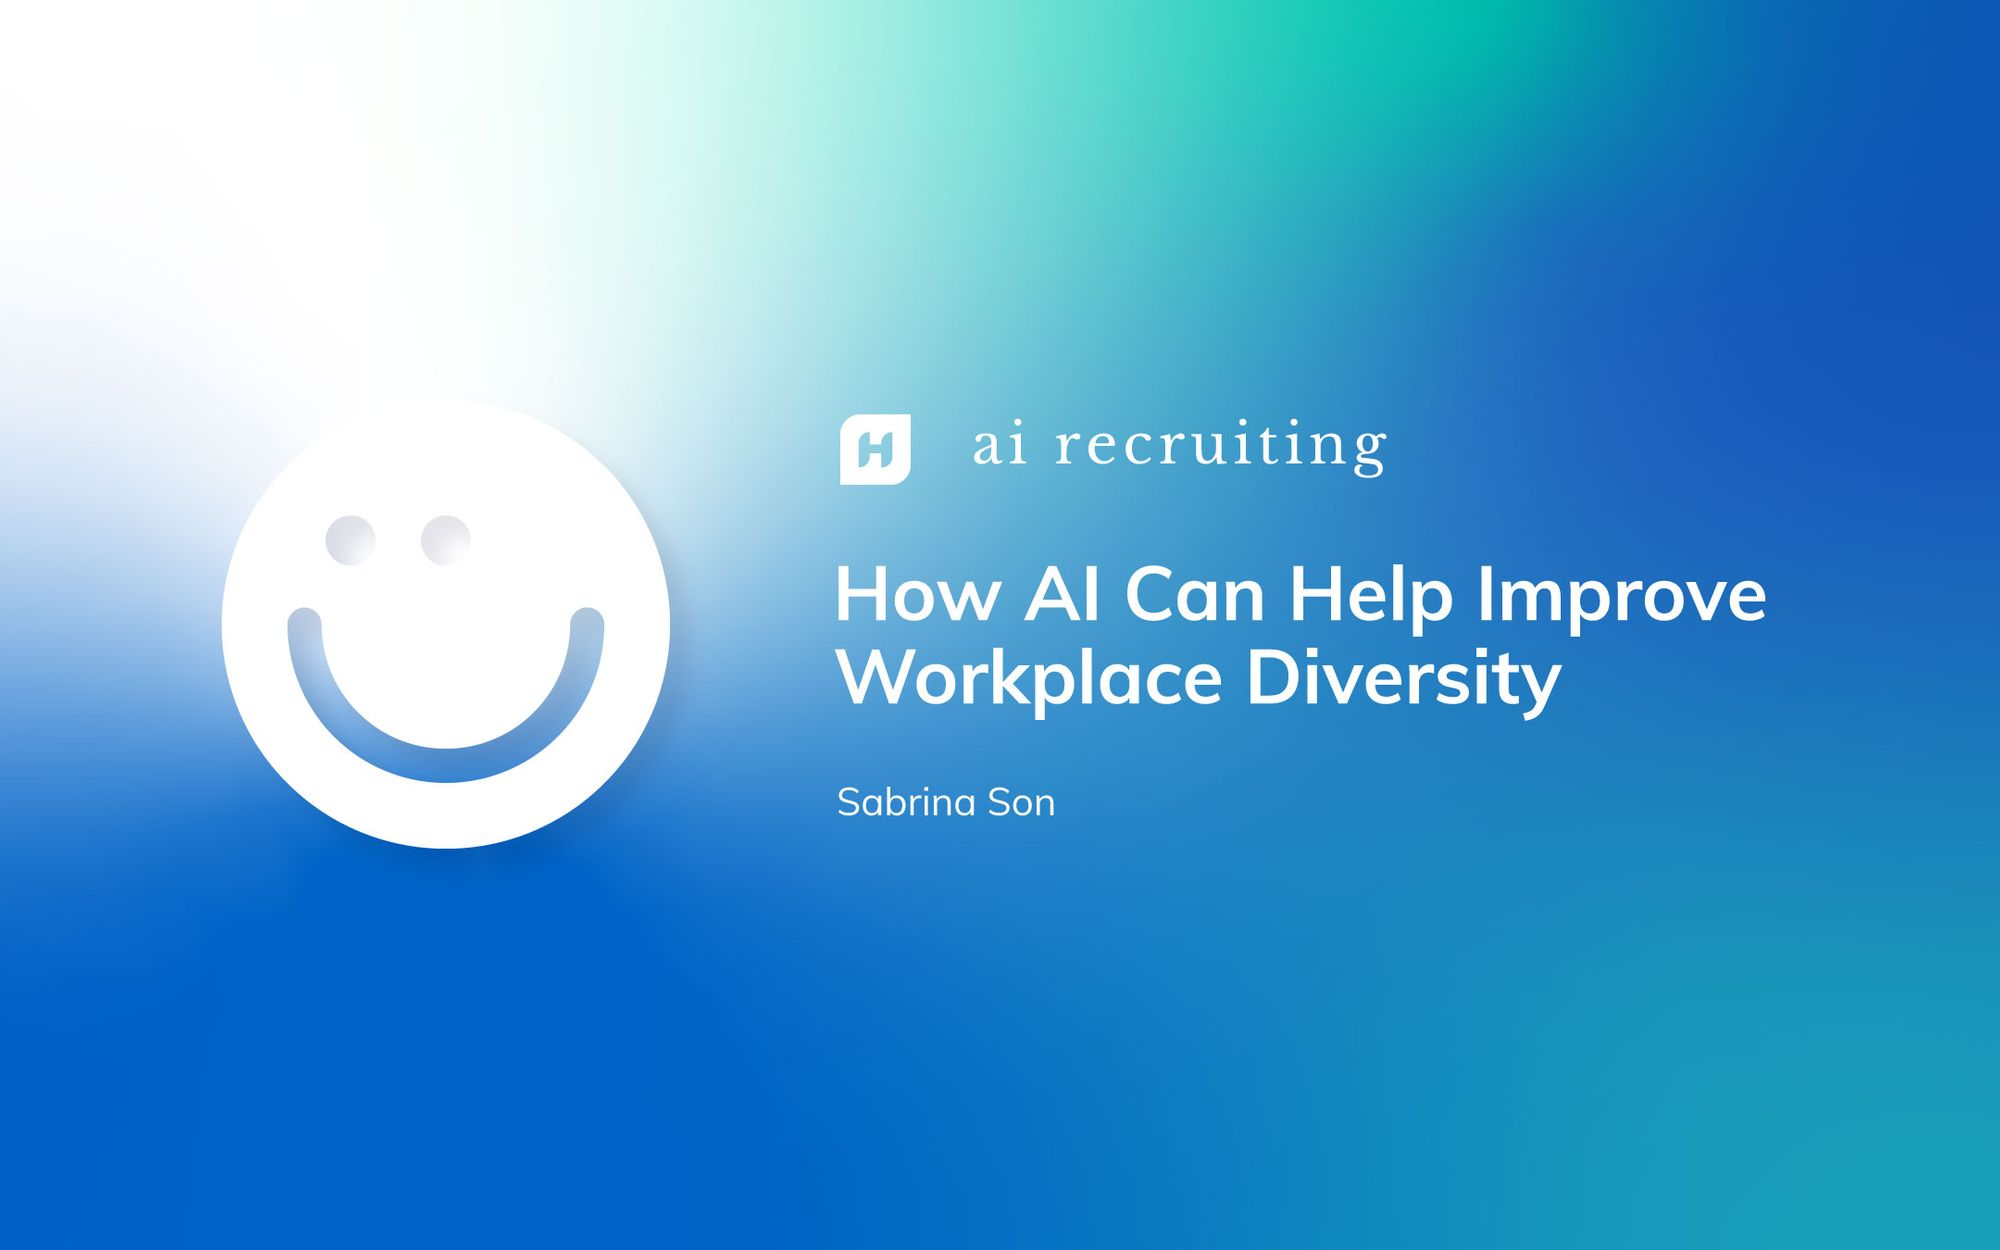 How AI Can Help Improve Workplace Diversity